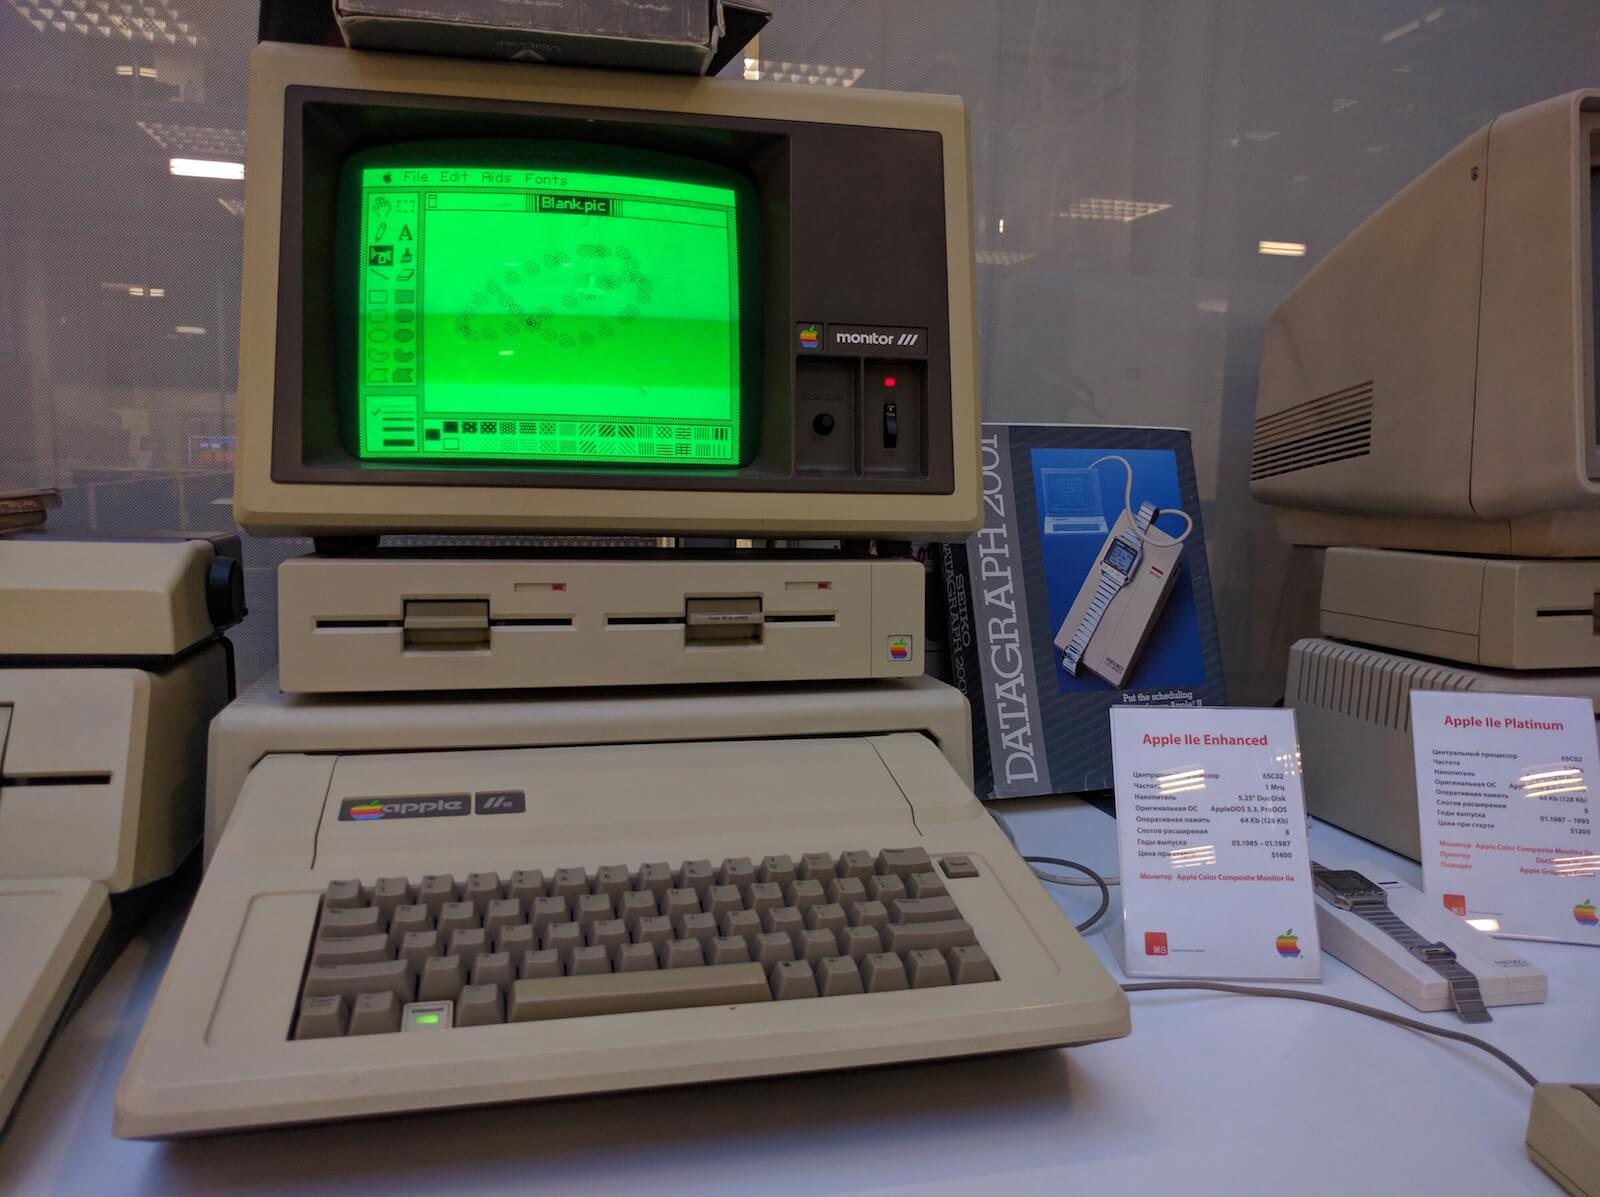 Apple IIe Enhanced, 1985 г., $1400